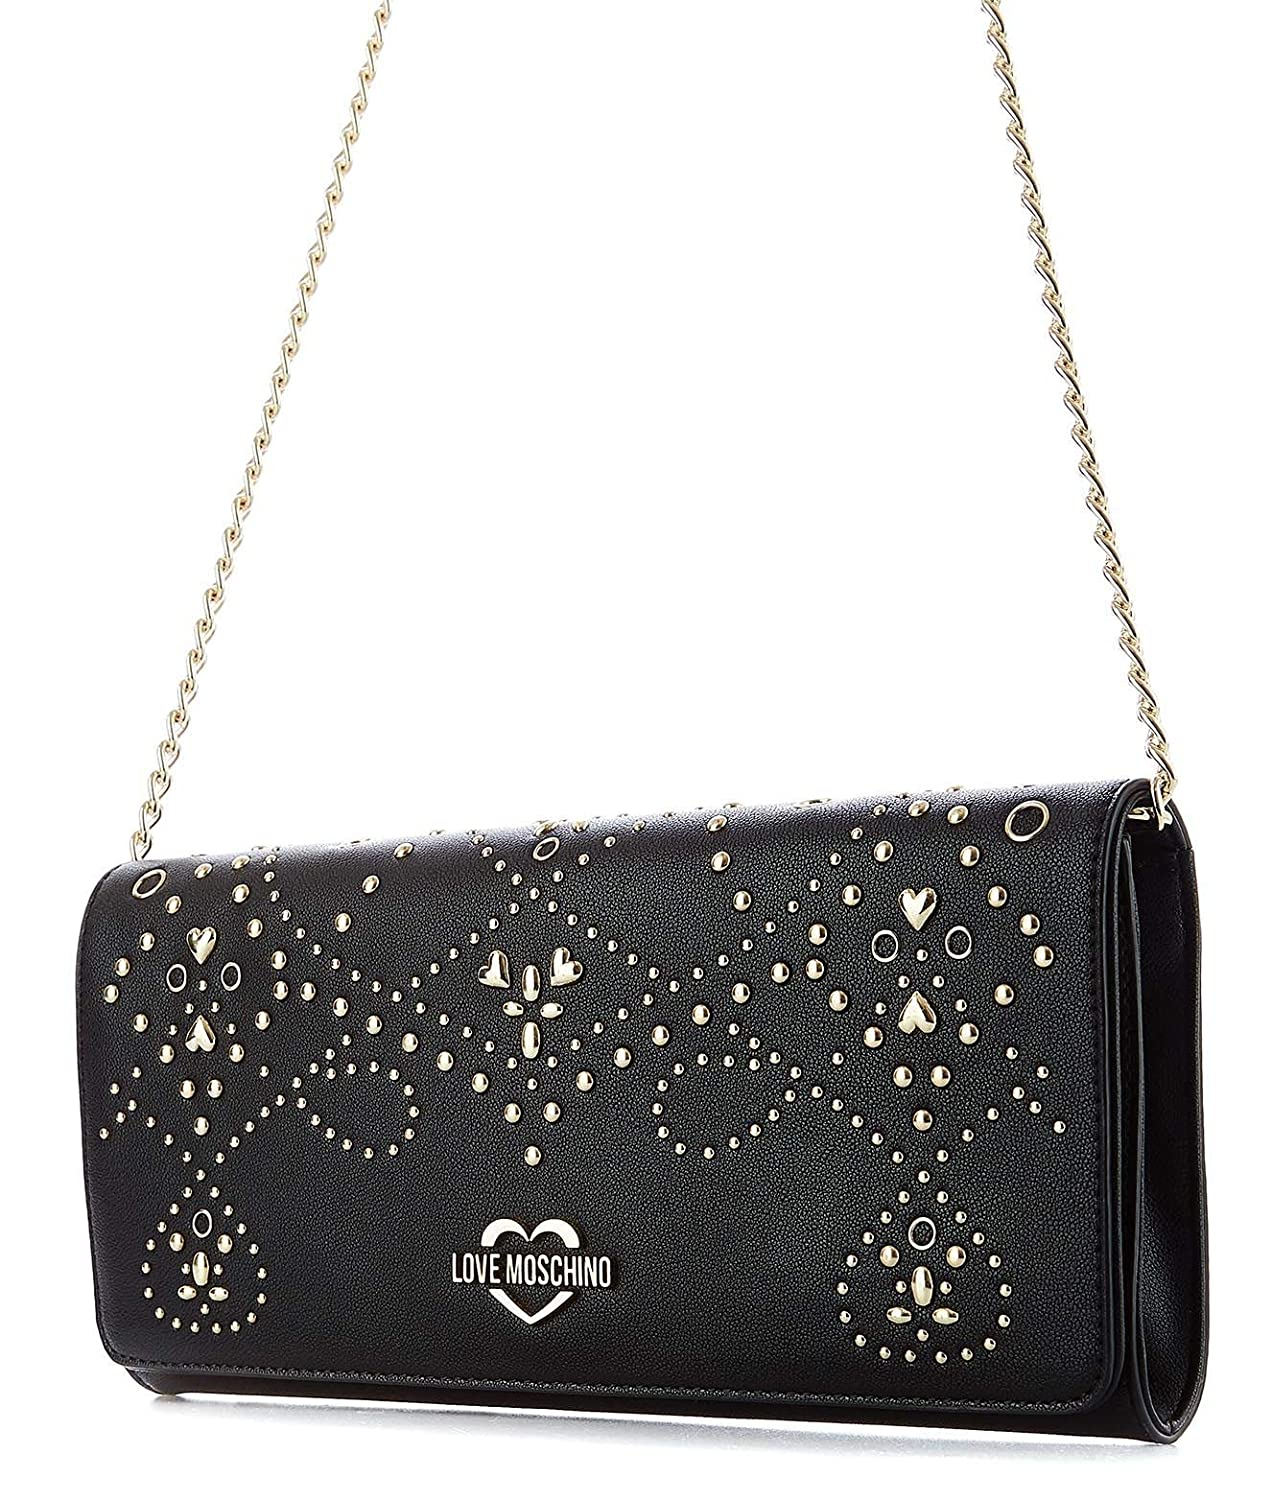 Love Moschino Womens JC4126PP17LR000A Black Faux Leather Shoulder Bag